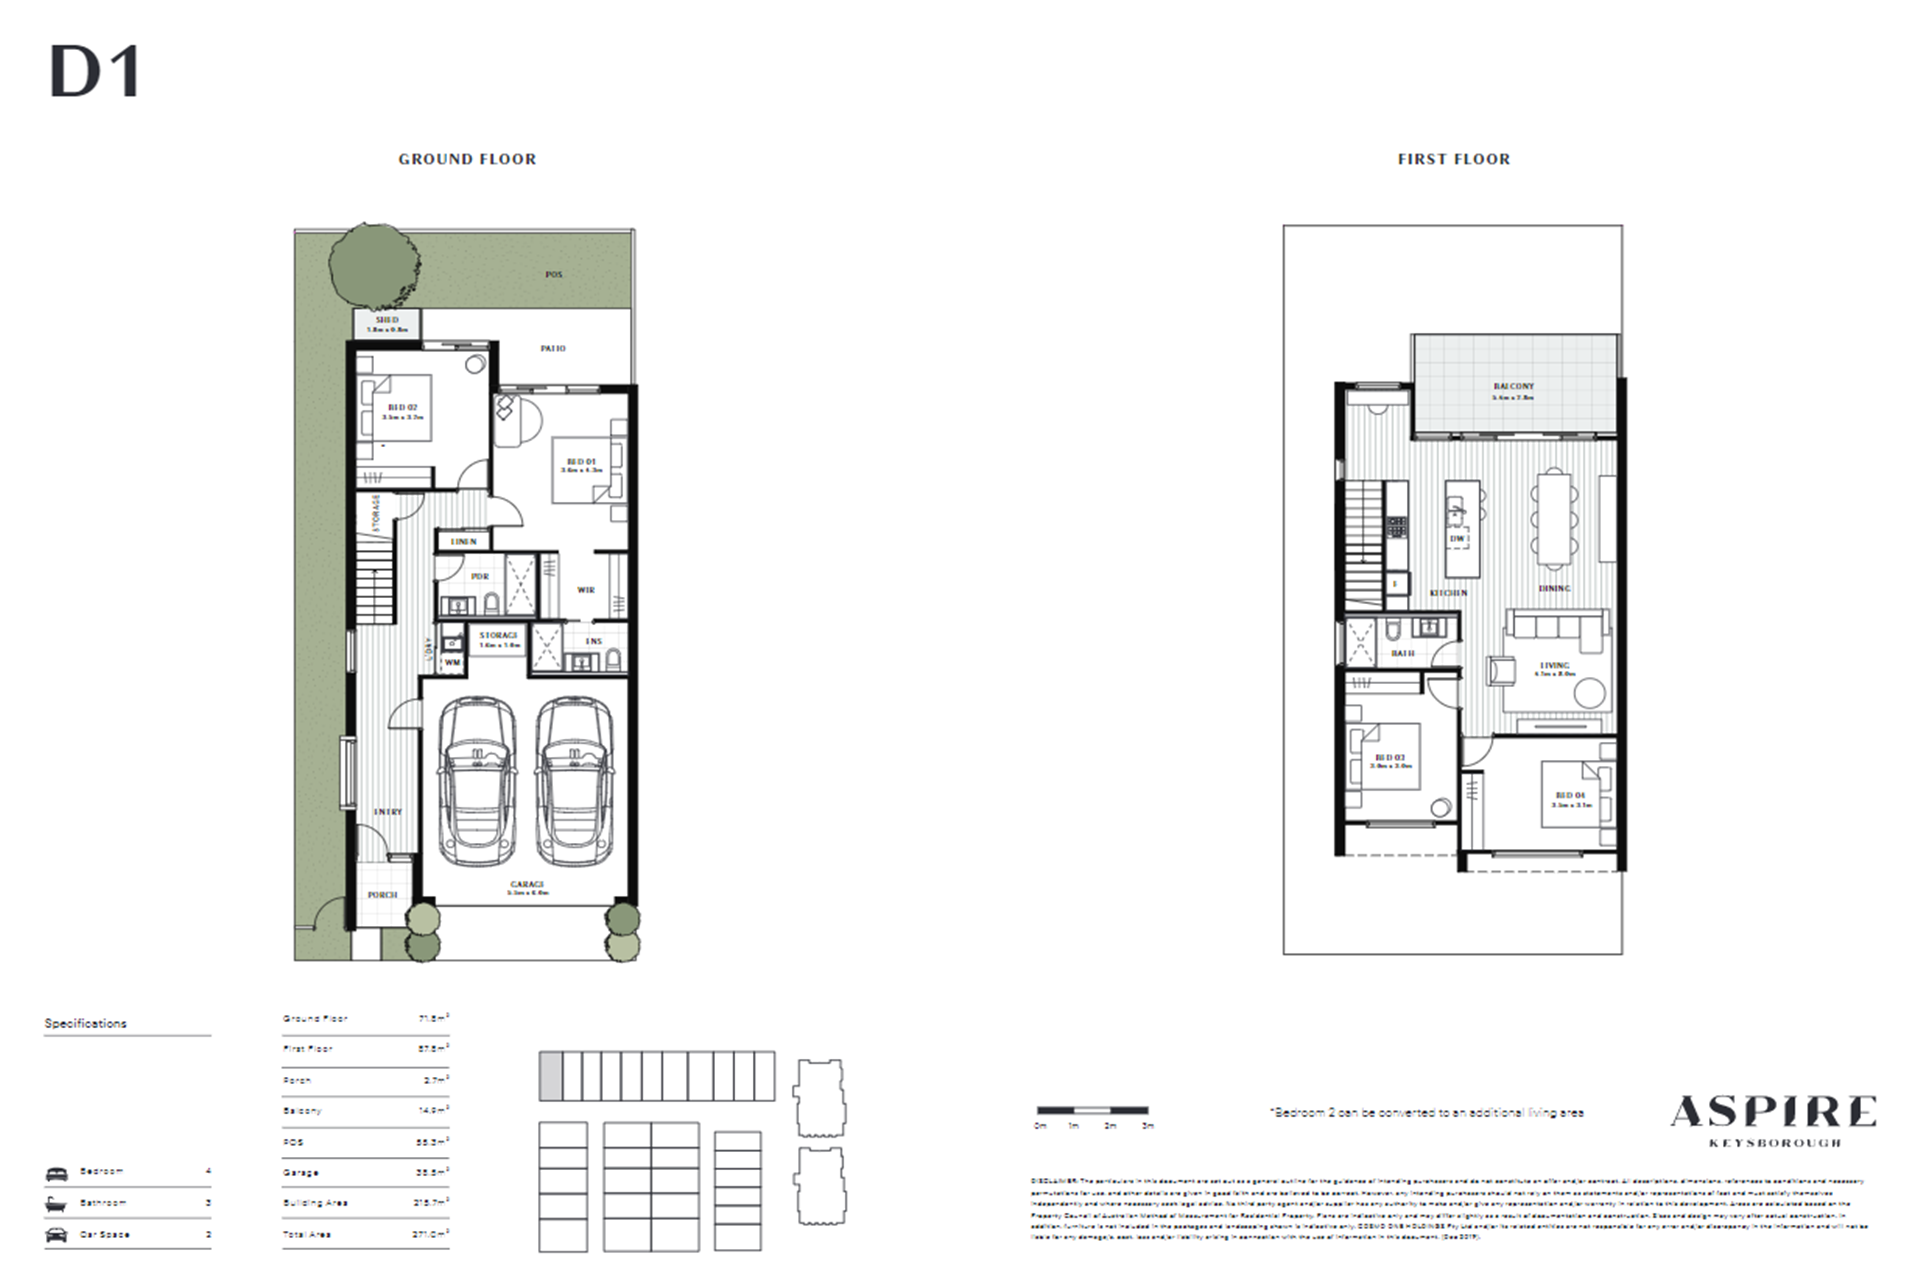 Aspire   D1 Floor Plan (Townhouse)